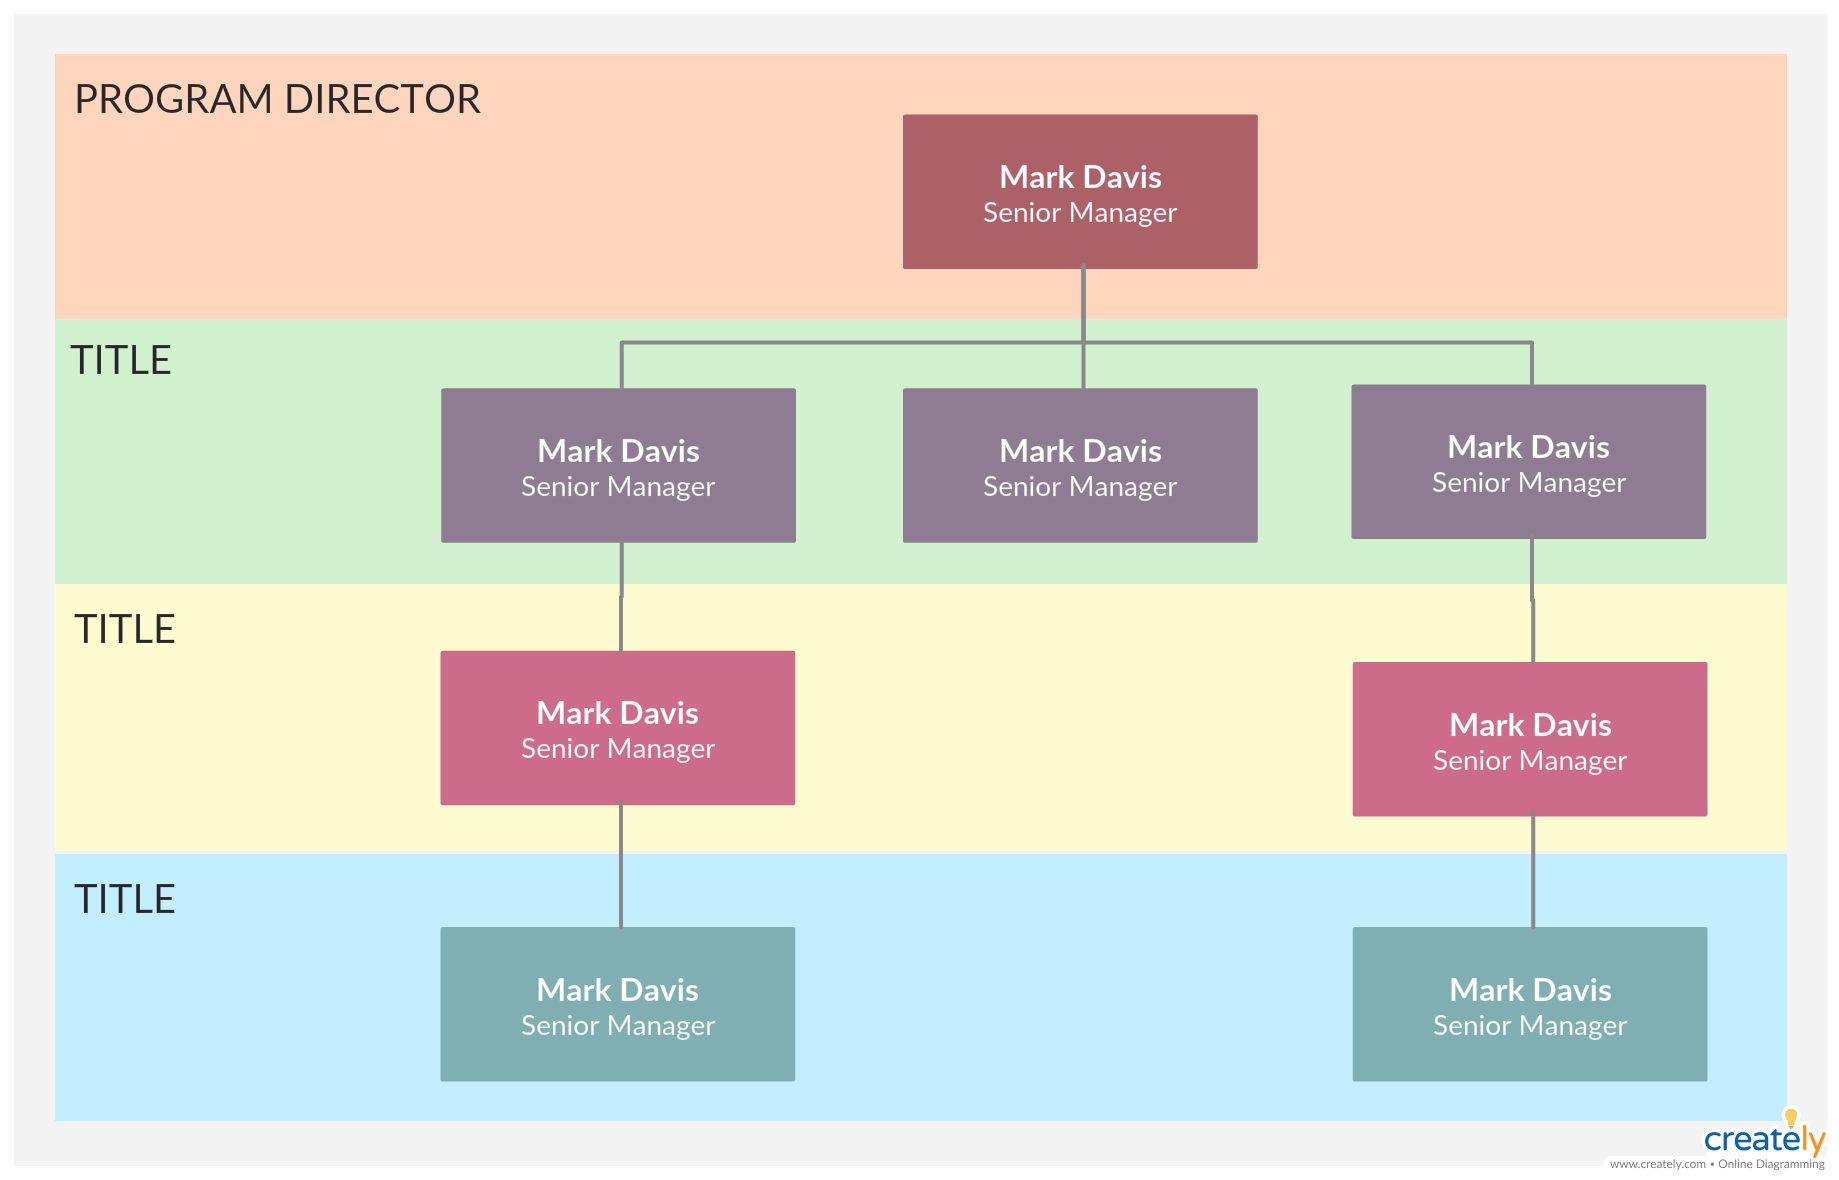 Emular veredicto escritura  Org Chart Best Practices for Effective Organizational Charts | Organogram,  Org chart, Organizational chart